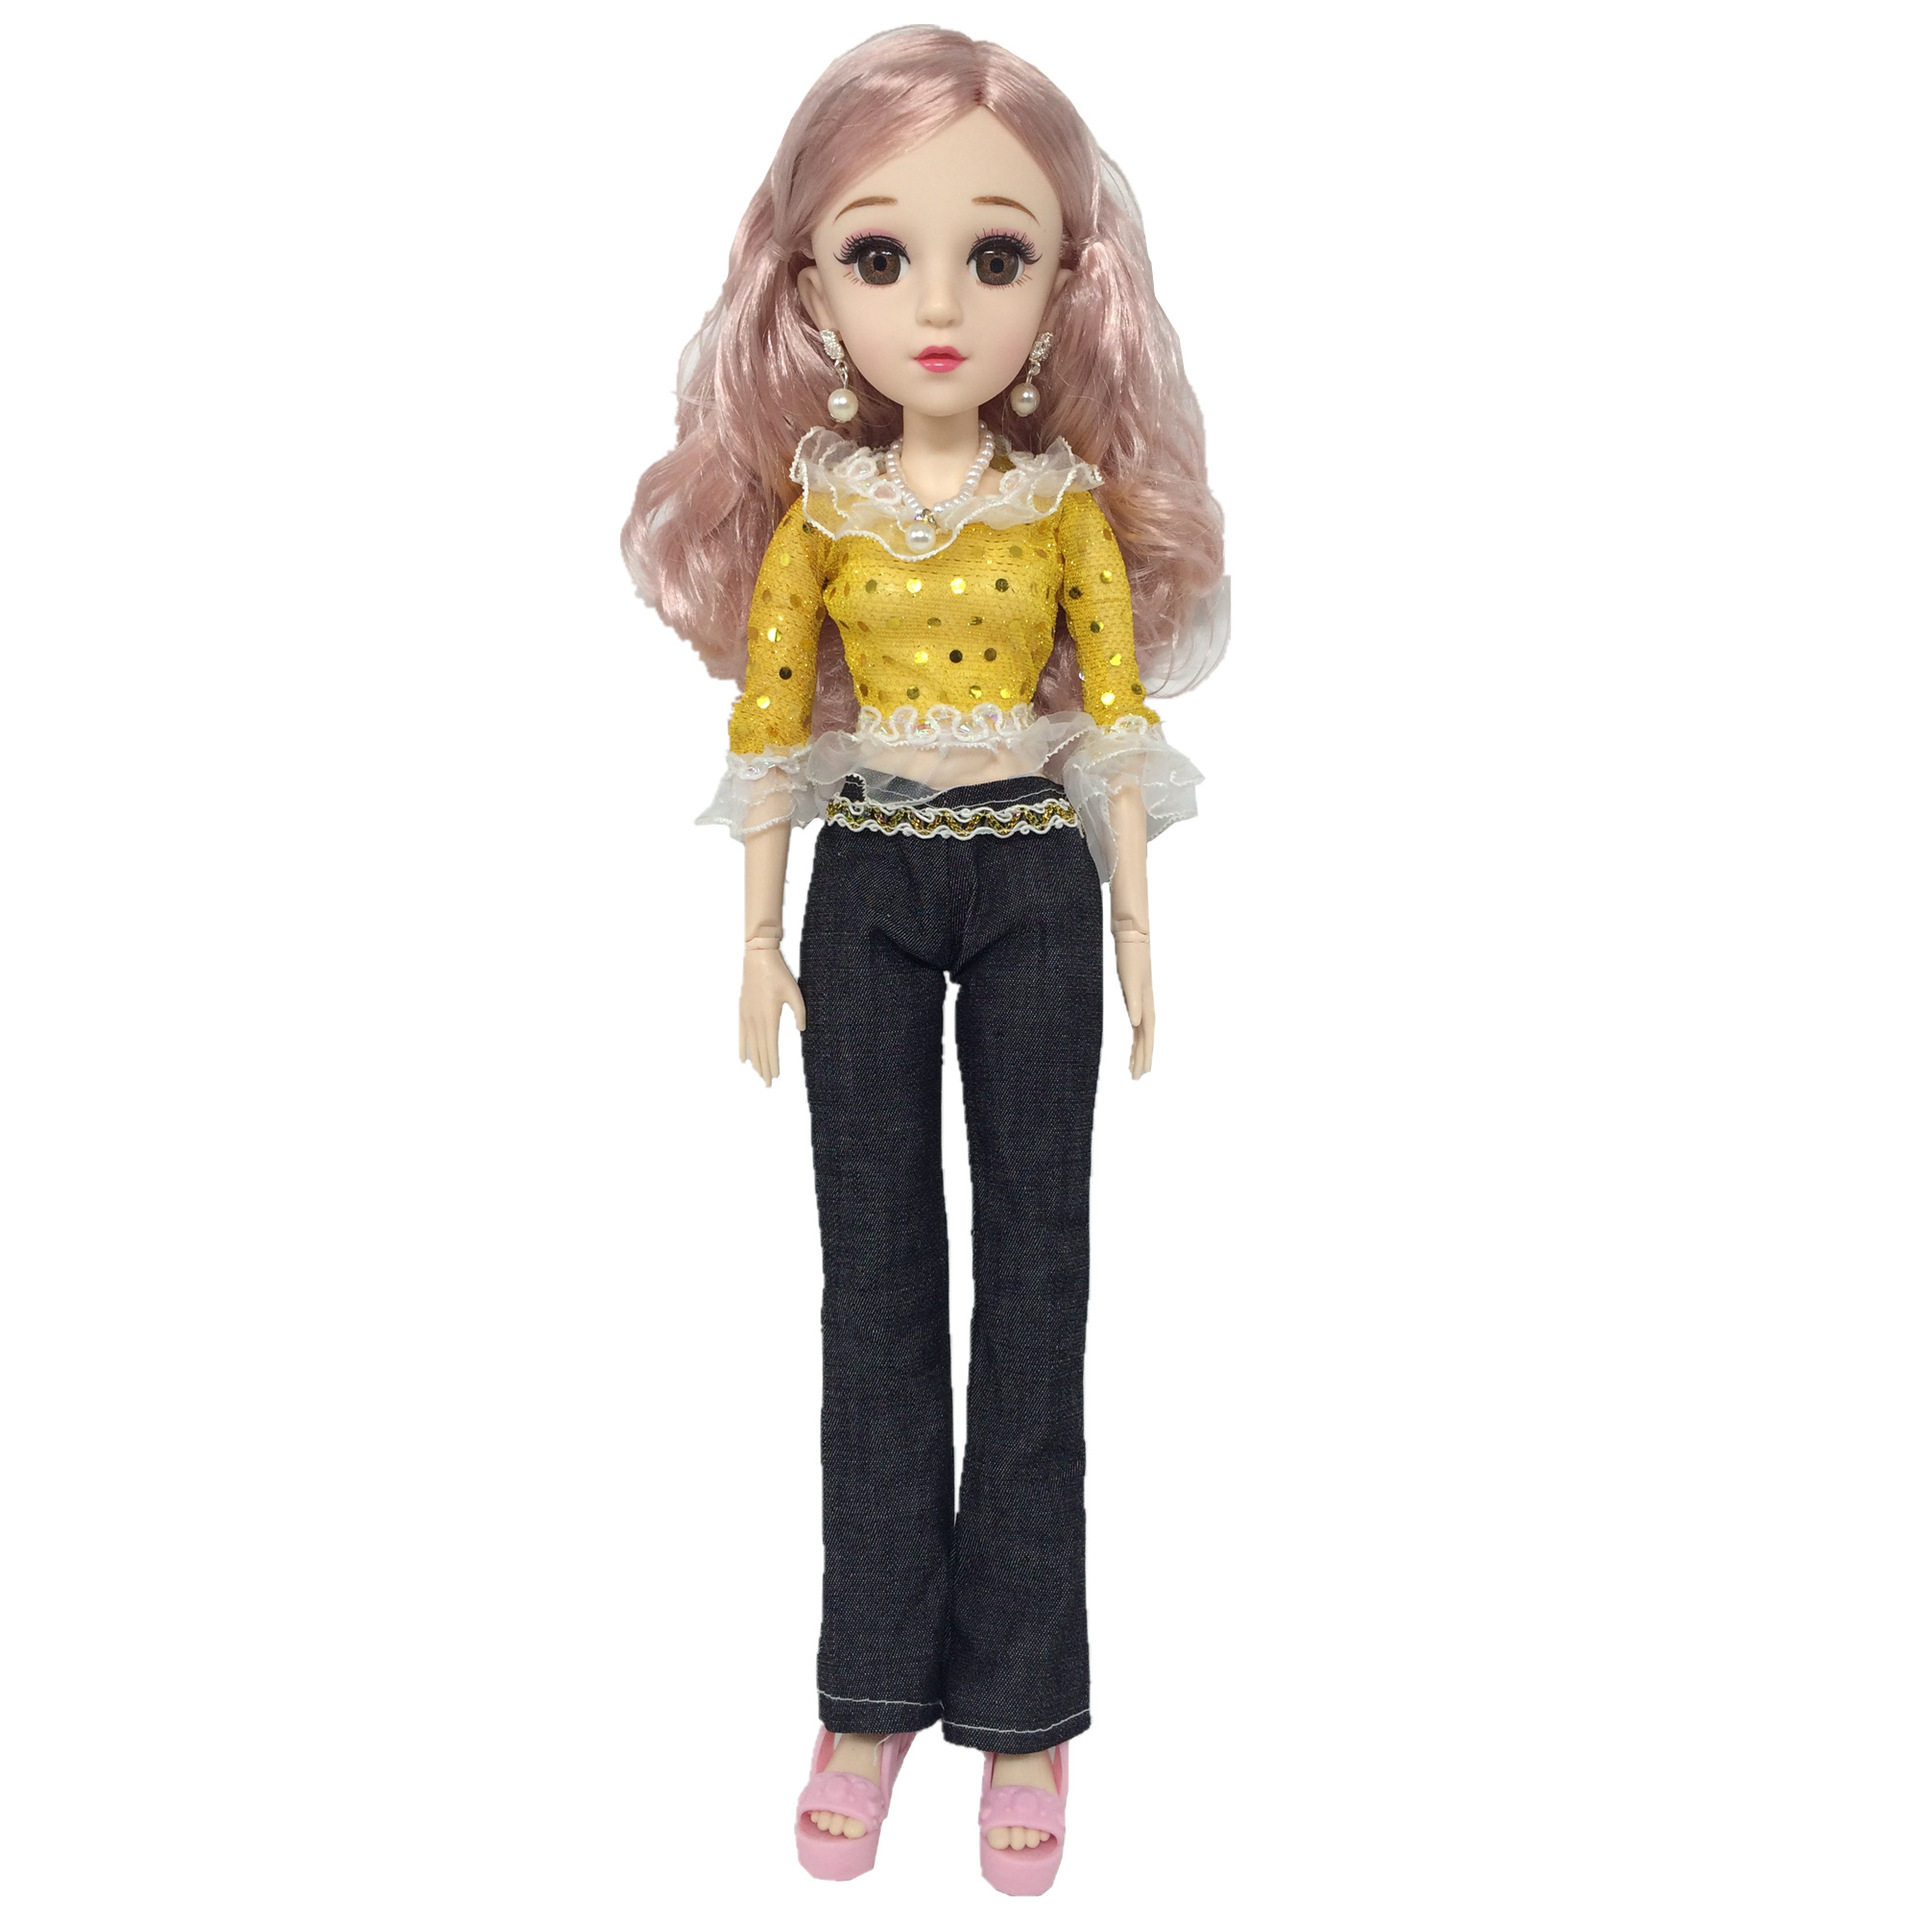 Outfit for doll 42-45cm16-18